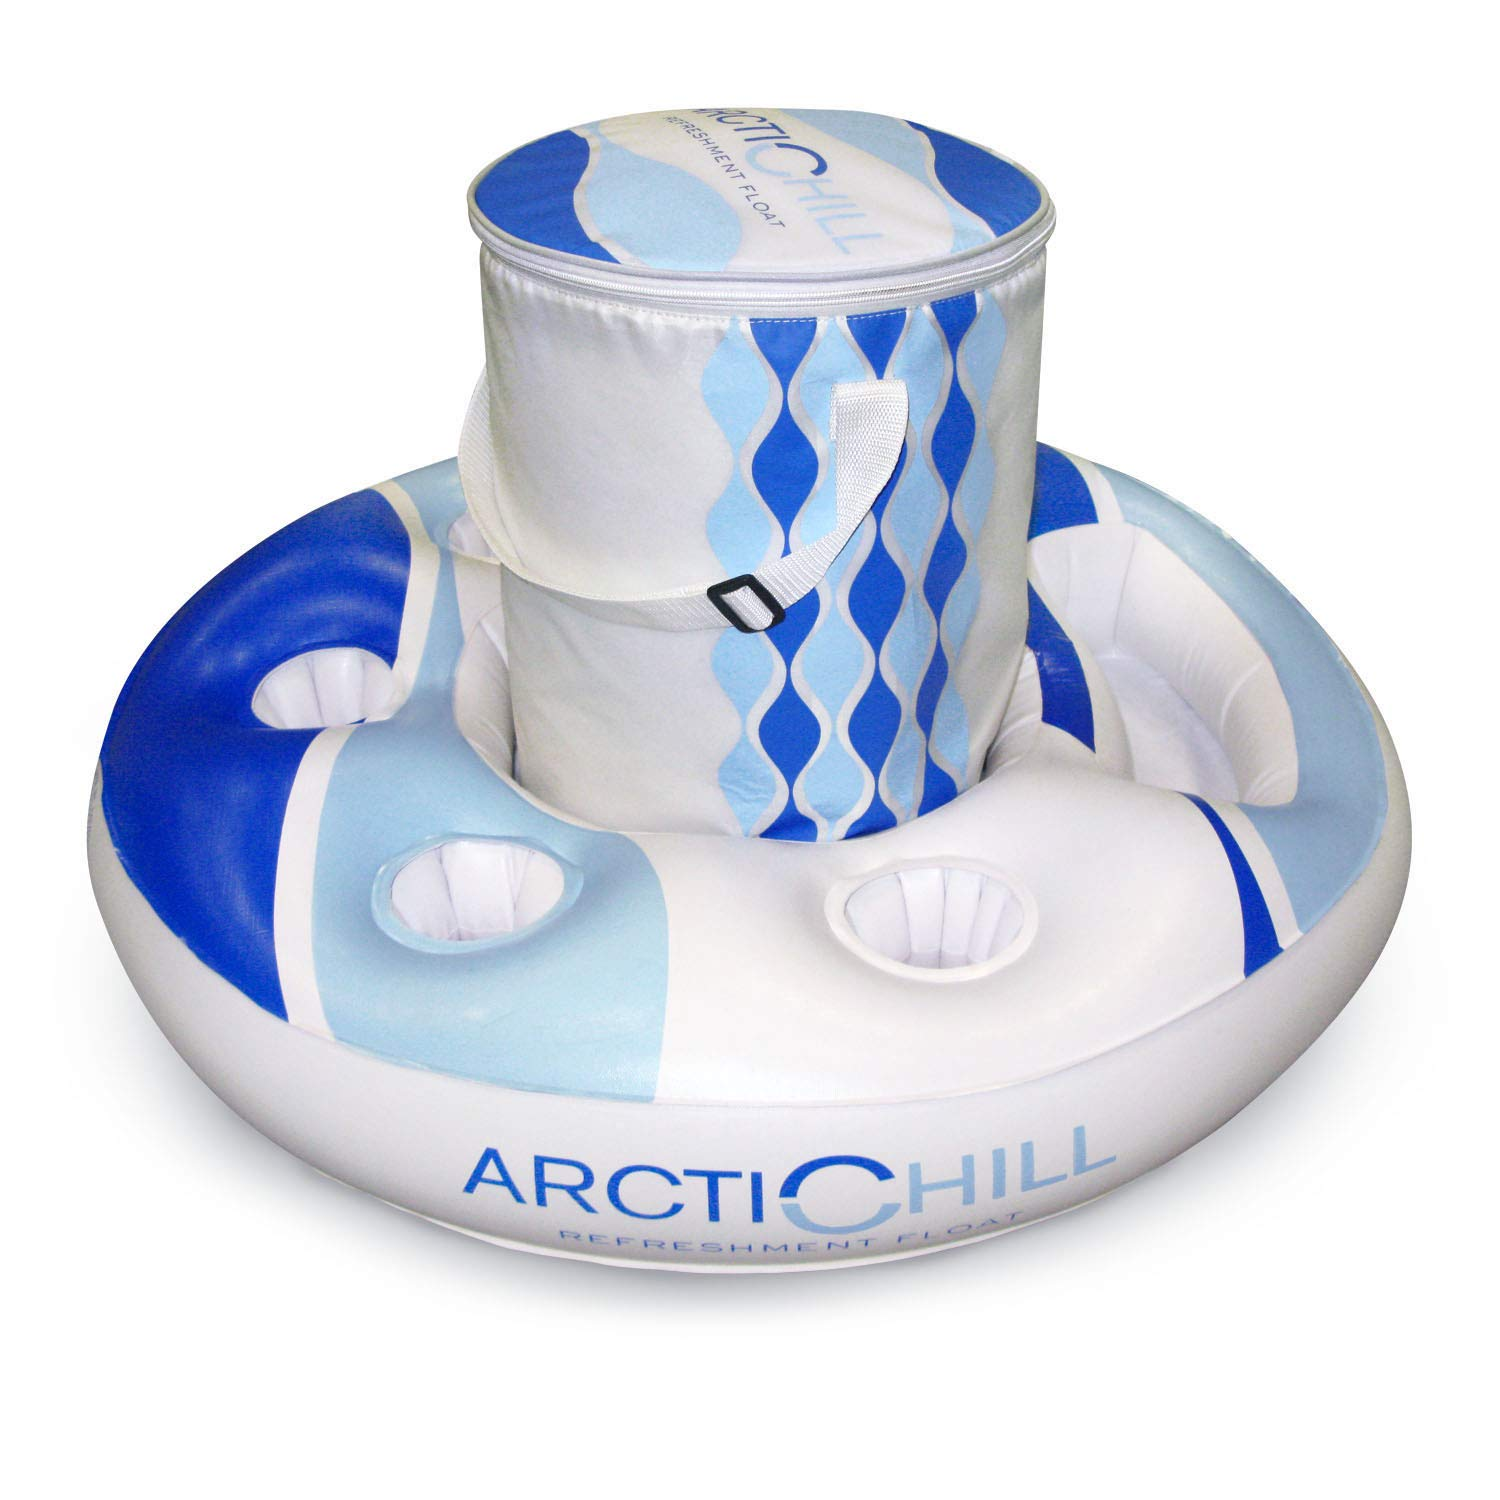 Poolmaster Refreshment and Beverage Floating Cooler, Artic Chill